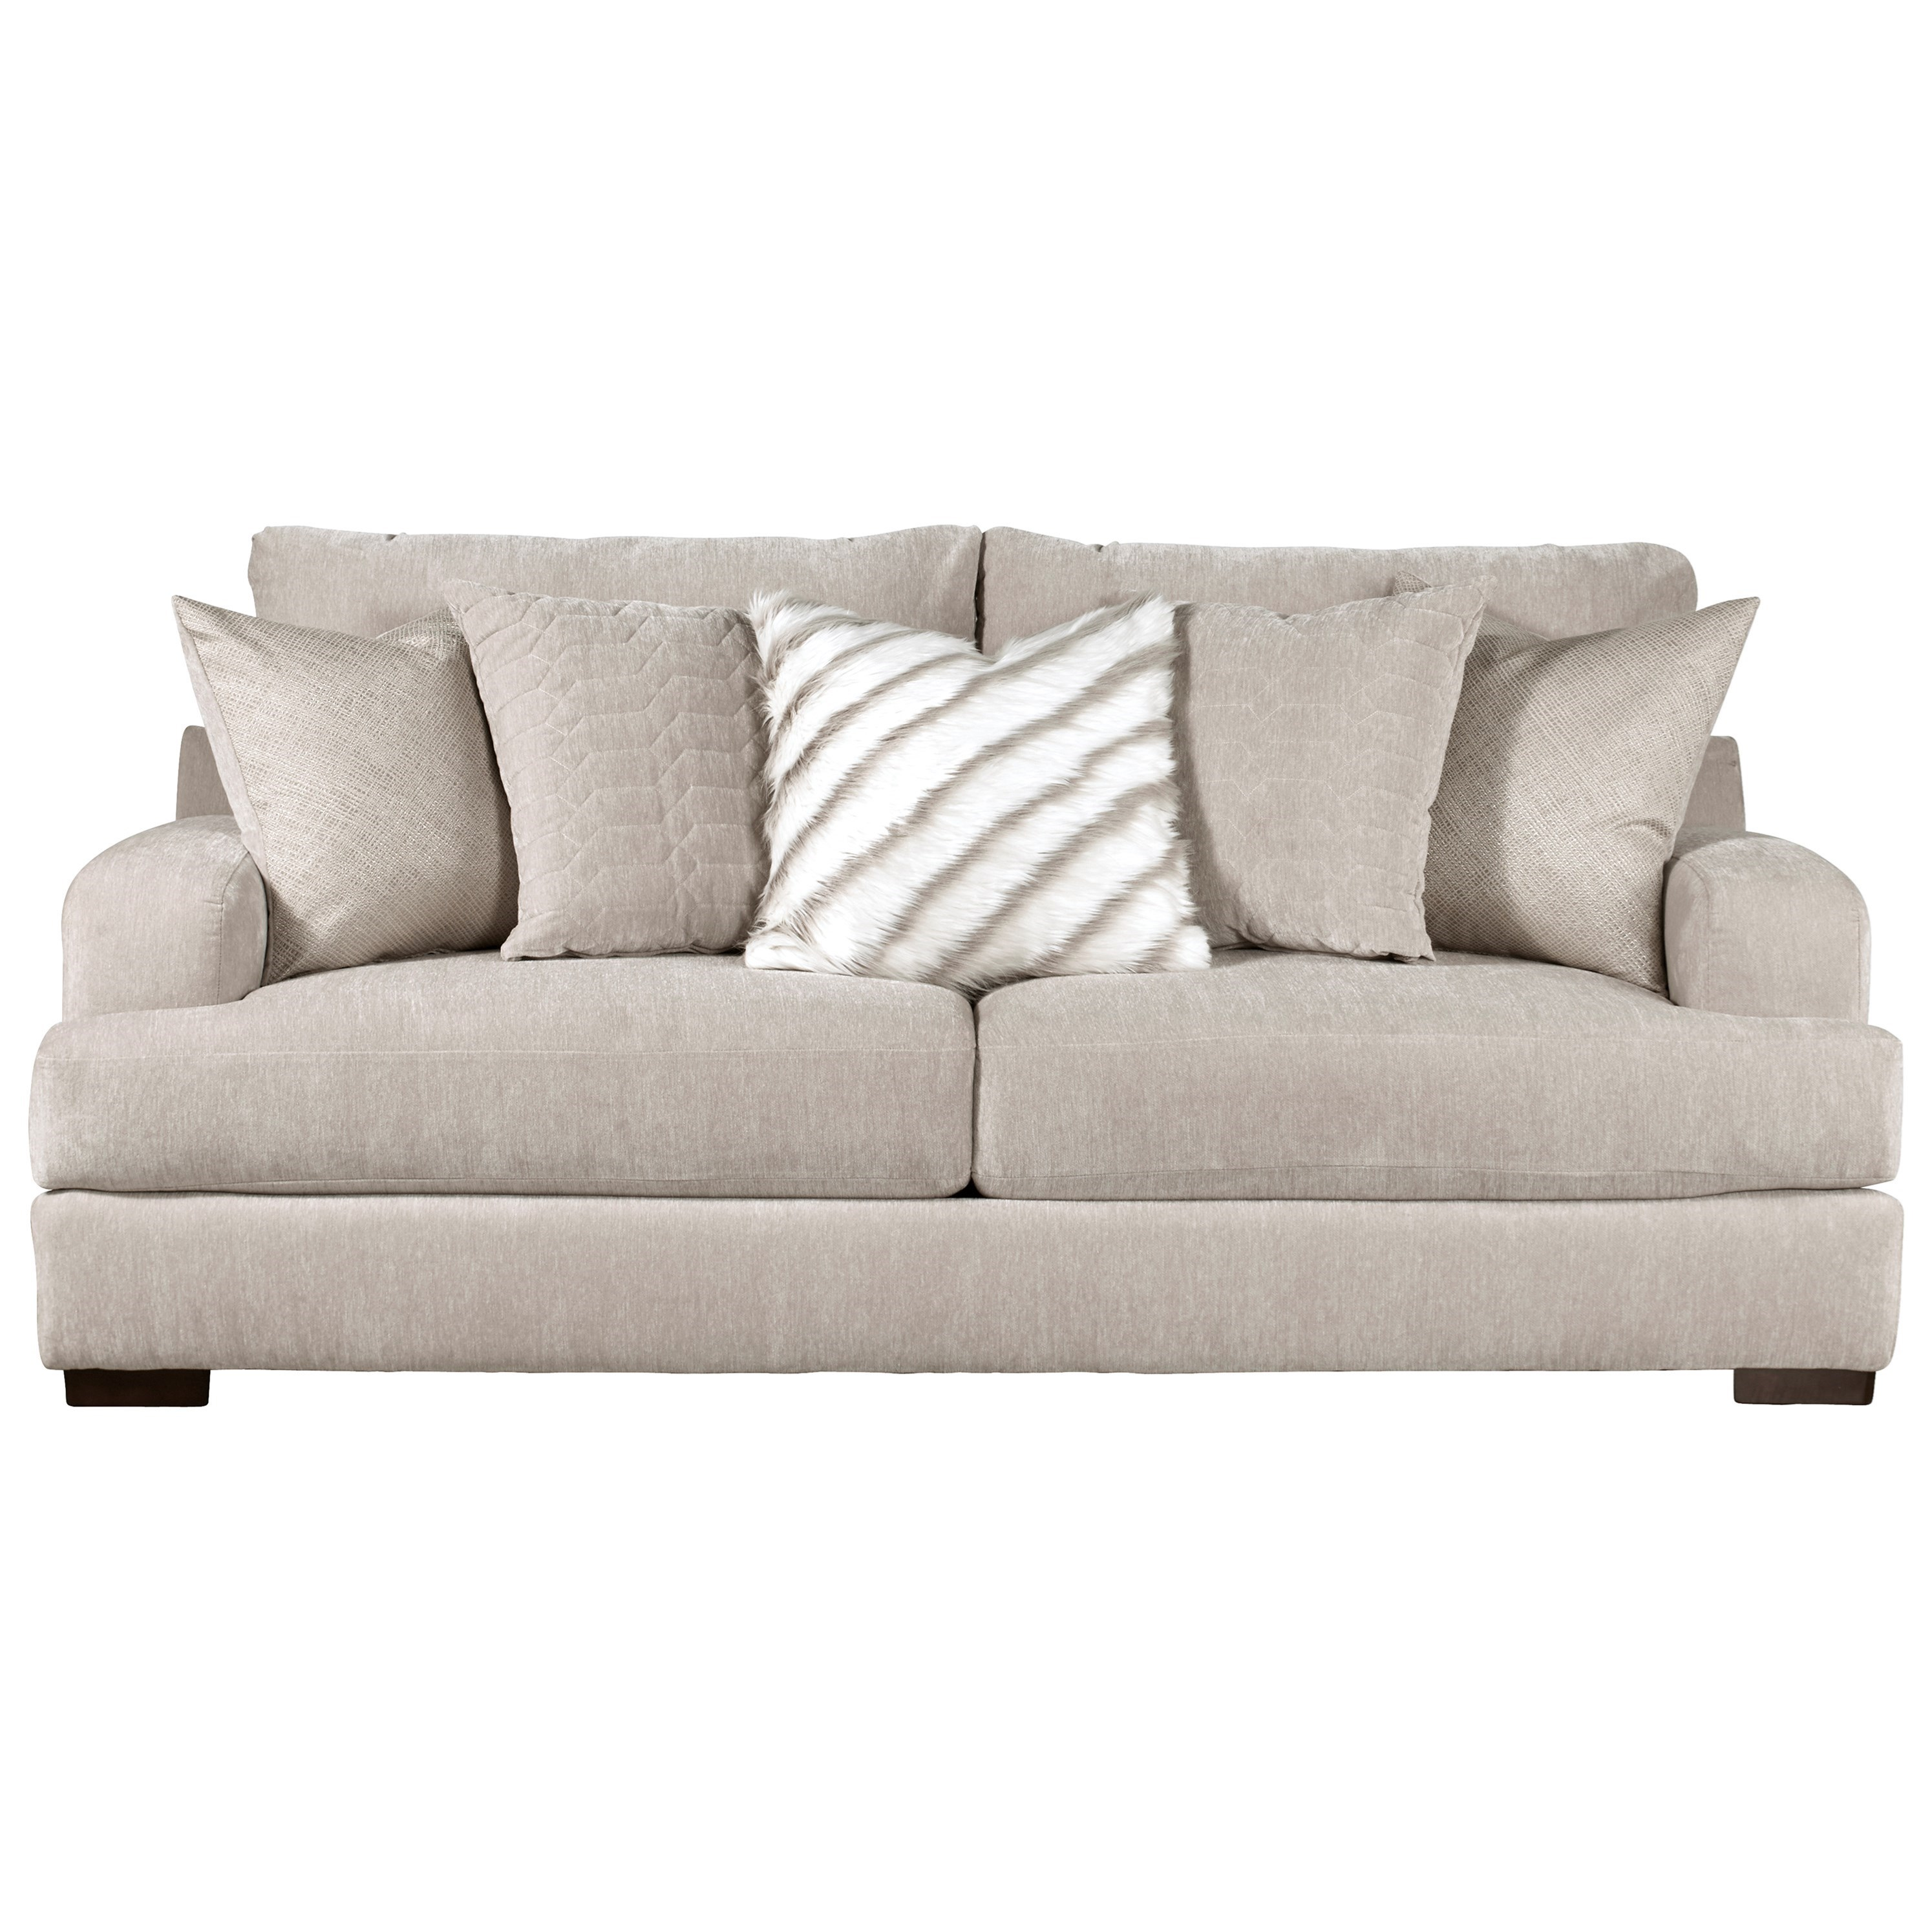 Gabrielle Living Room: Jackson Furniture Gabrielle Sofa With Track Arms